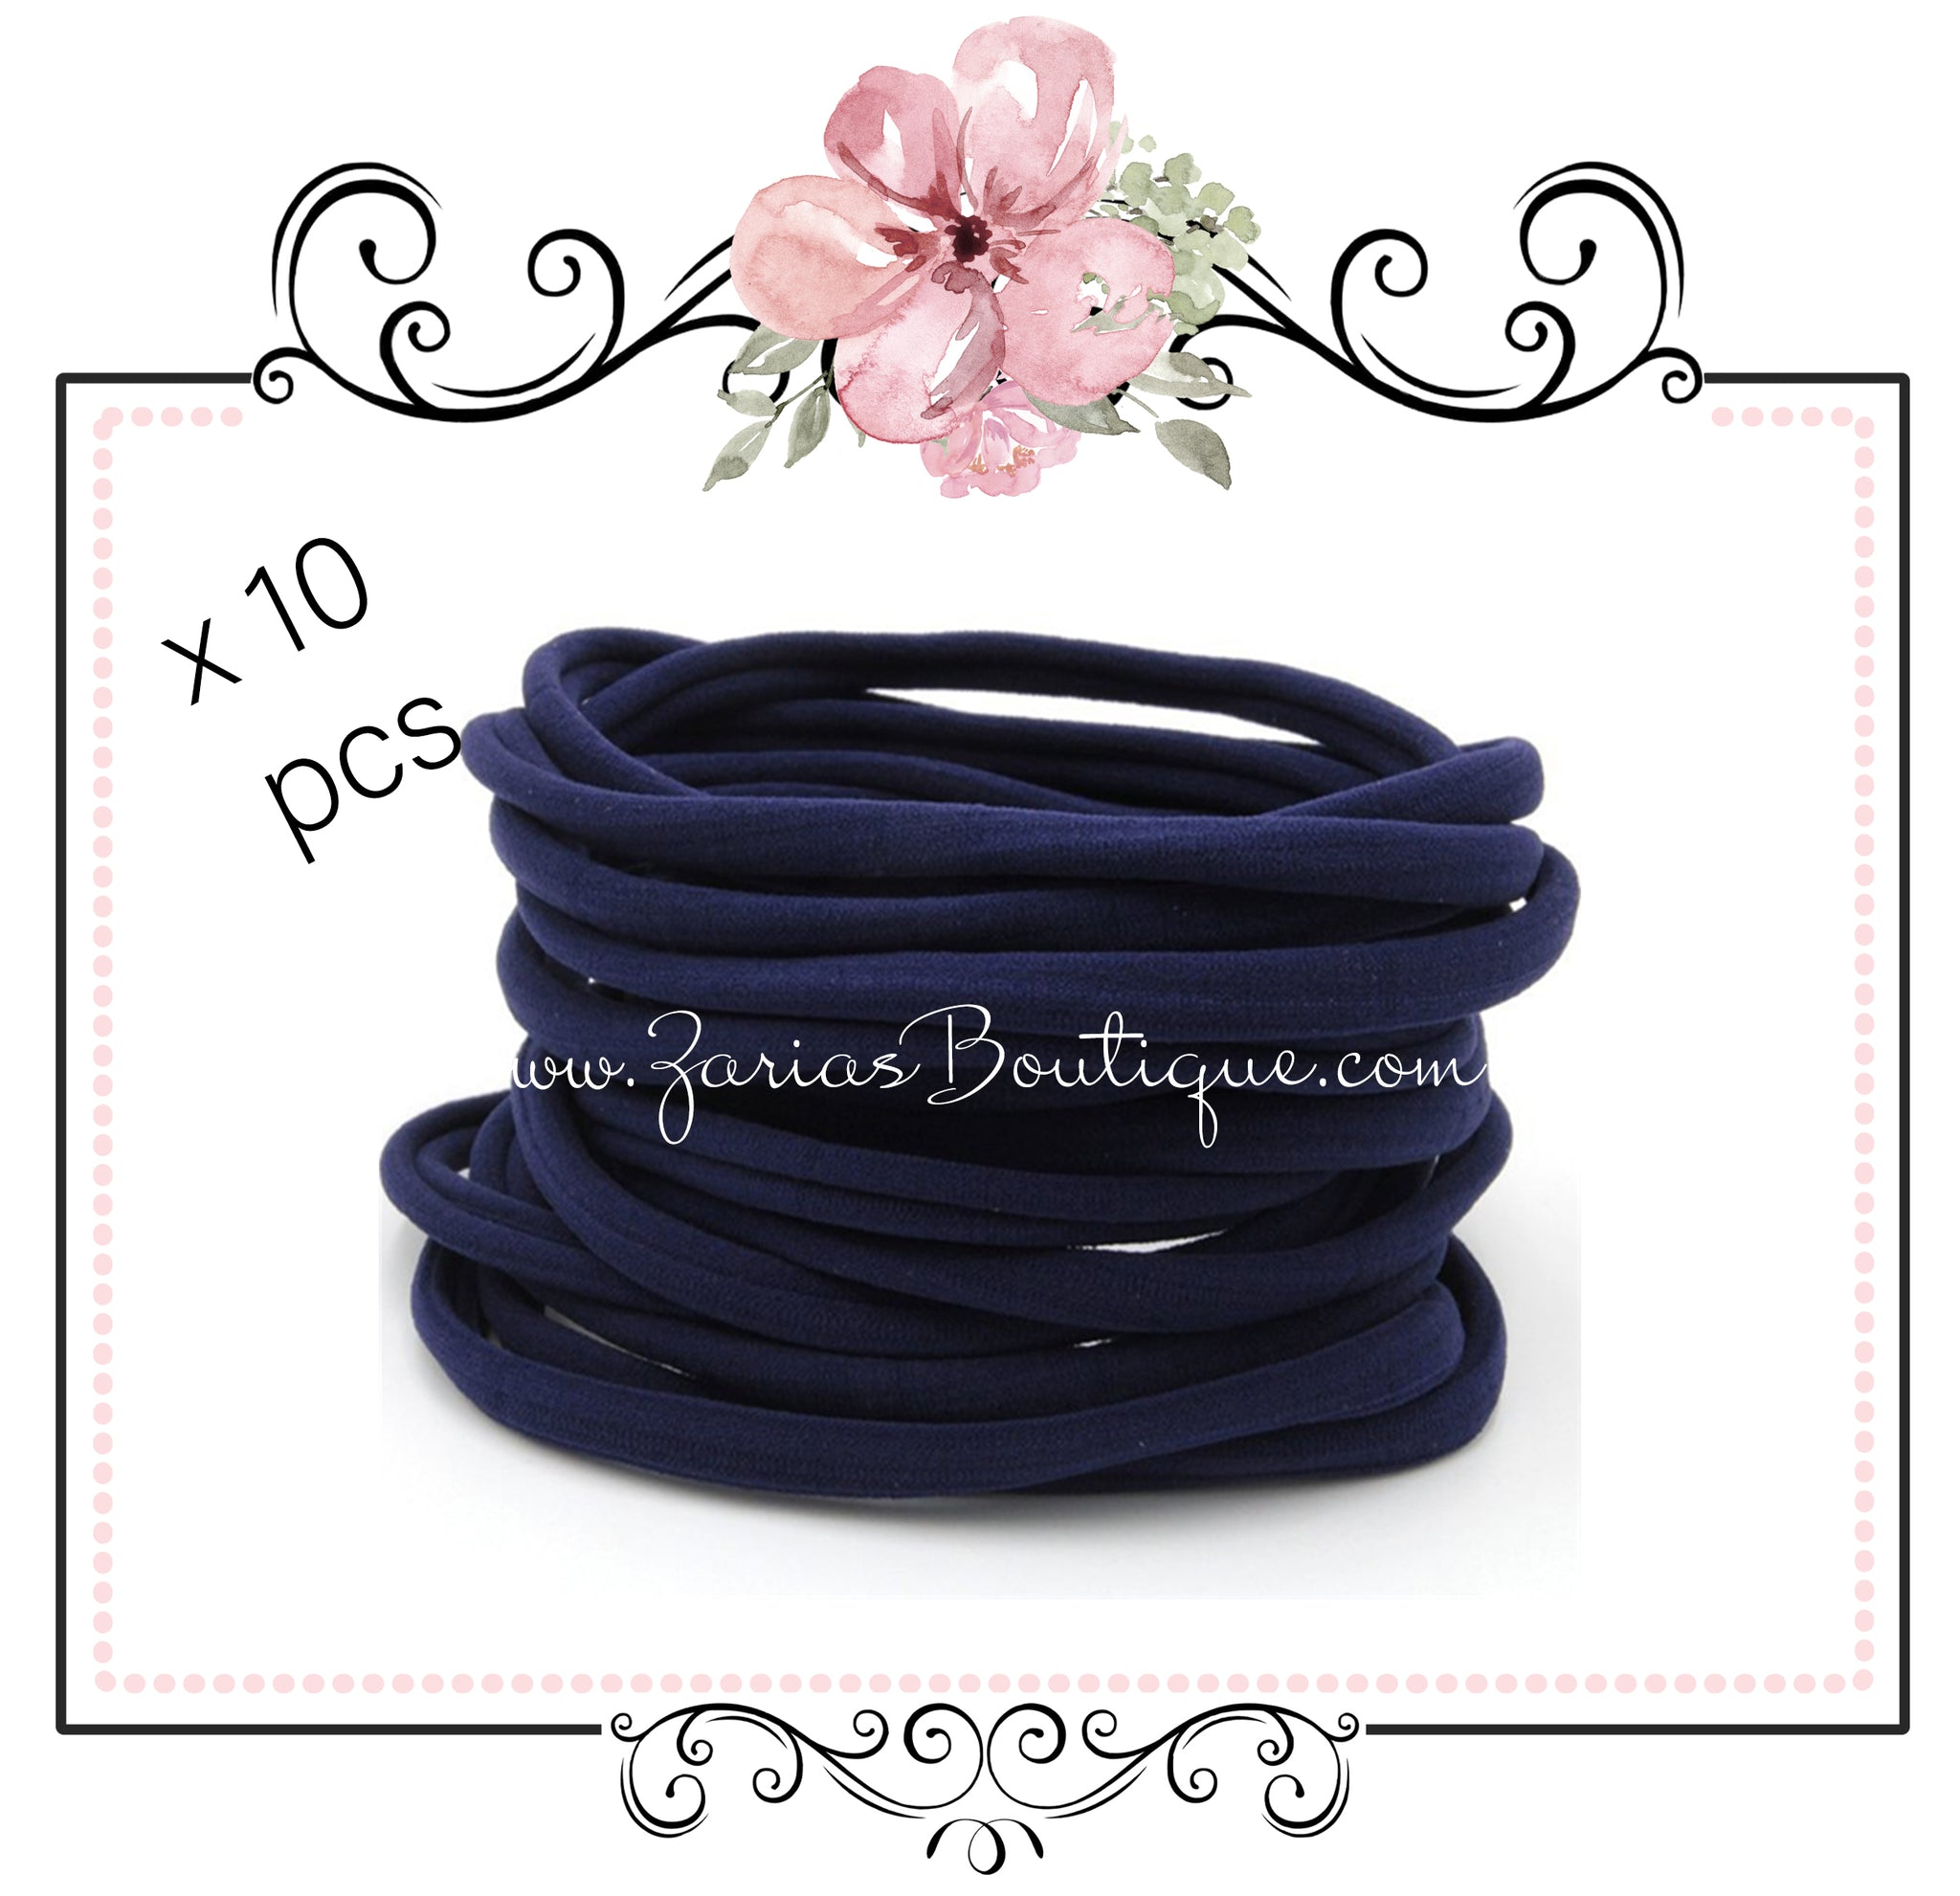 SALE 10 Nylon Headbands ~ Navy Blue ~ Fits Babies & Children